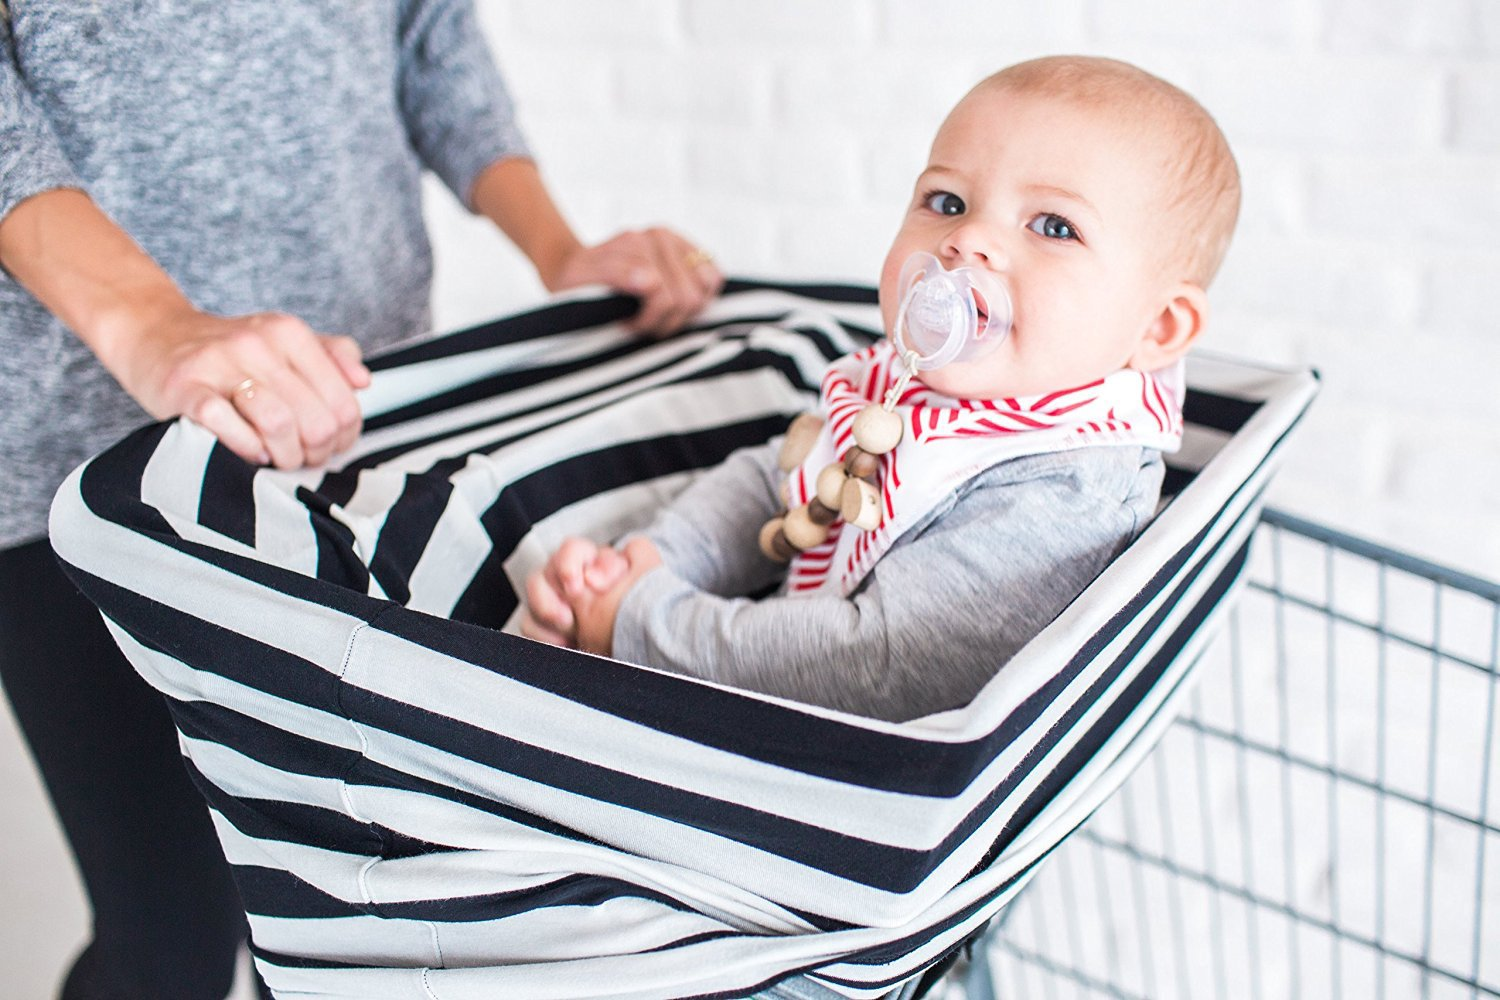 Multi-Use Cotton Nursing Breastfeeding Cover Baby Car Set Cover Canopy Shopping Cart Cover Swaddle Blanket for Infants Newborns Toddlers Shower Gift I